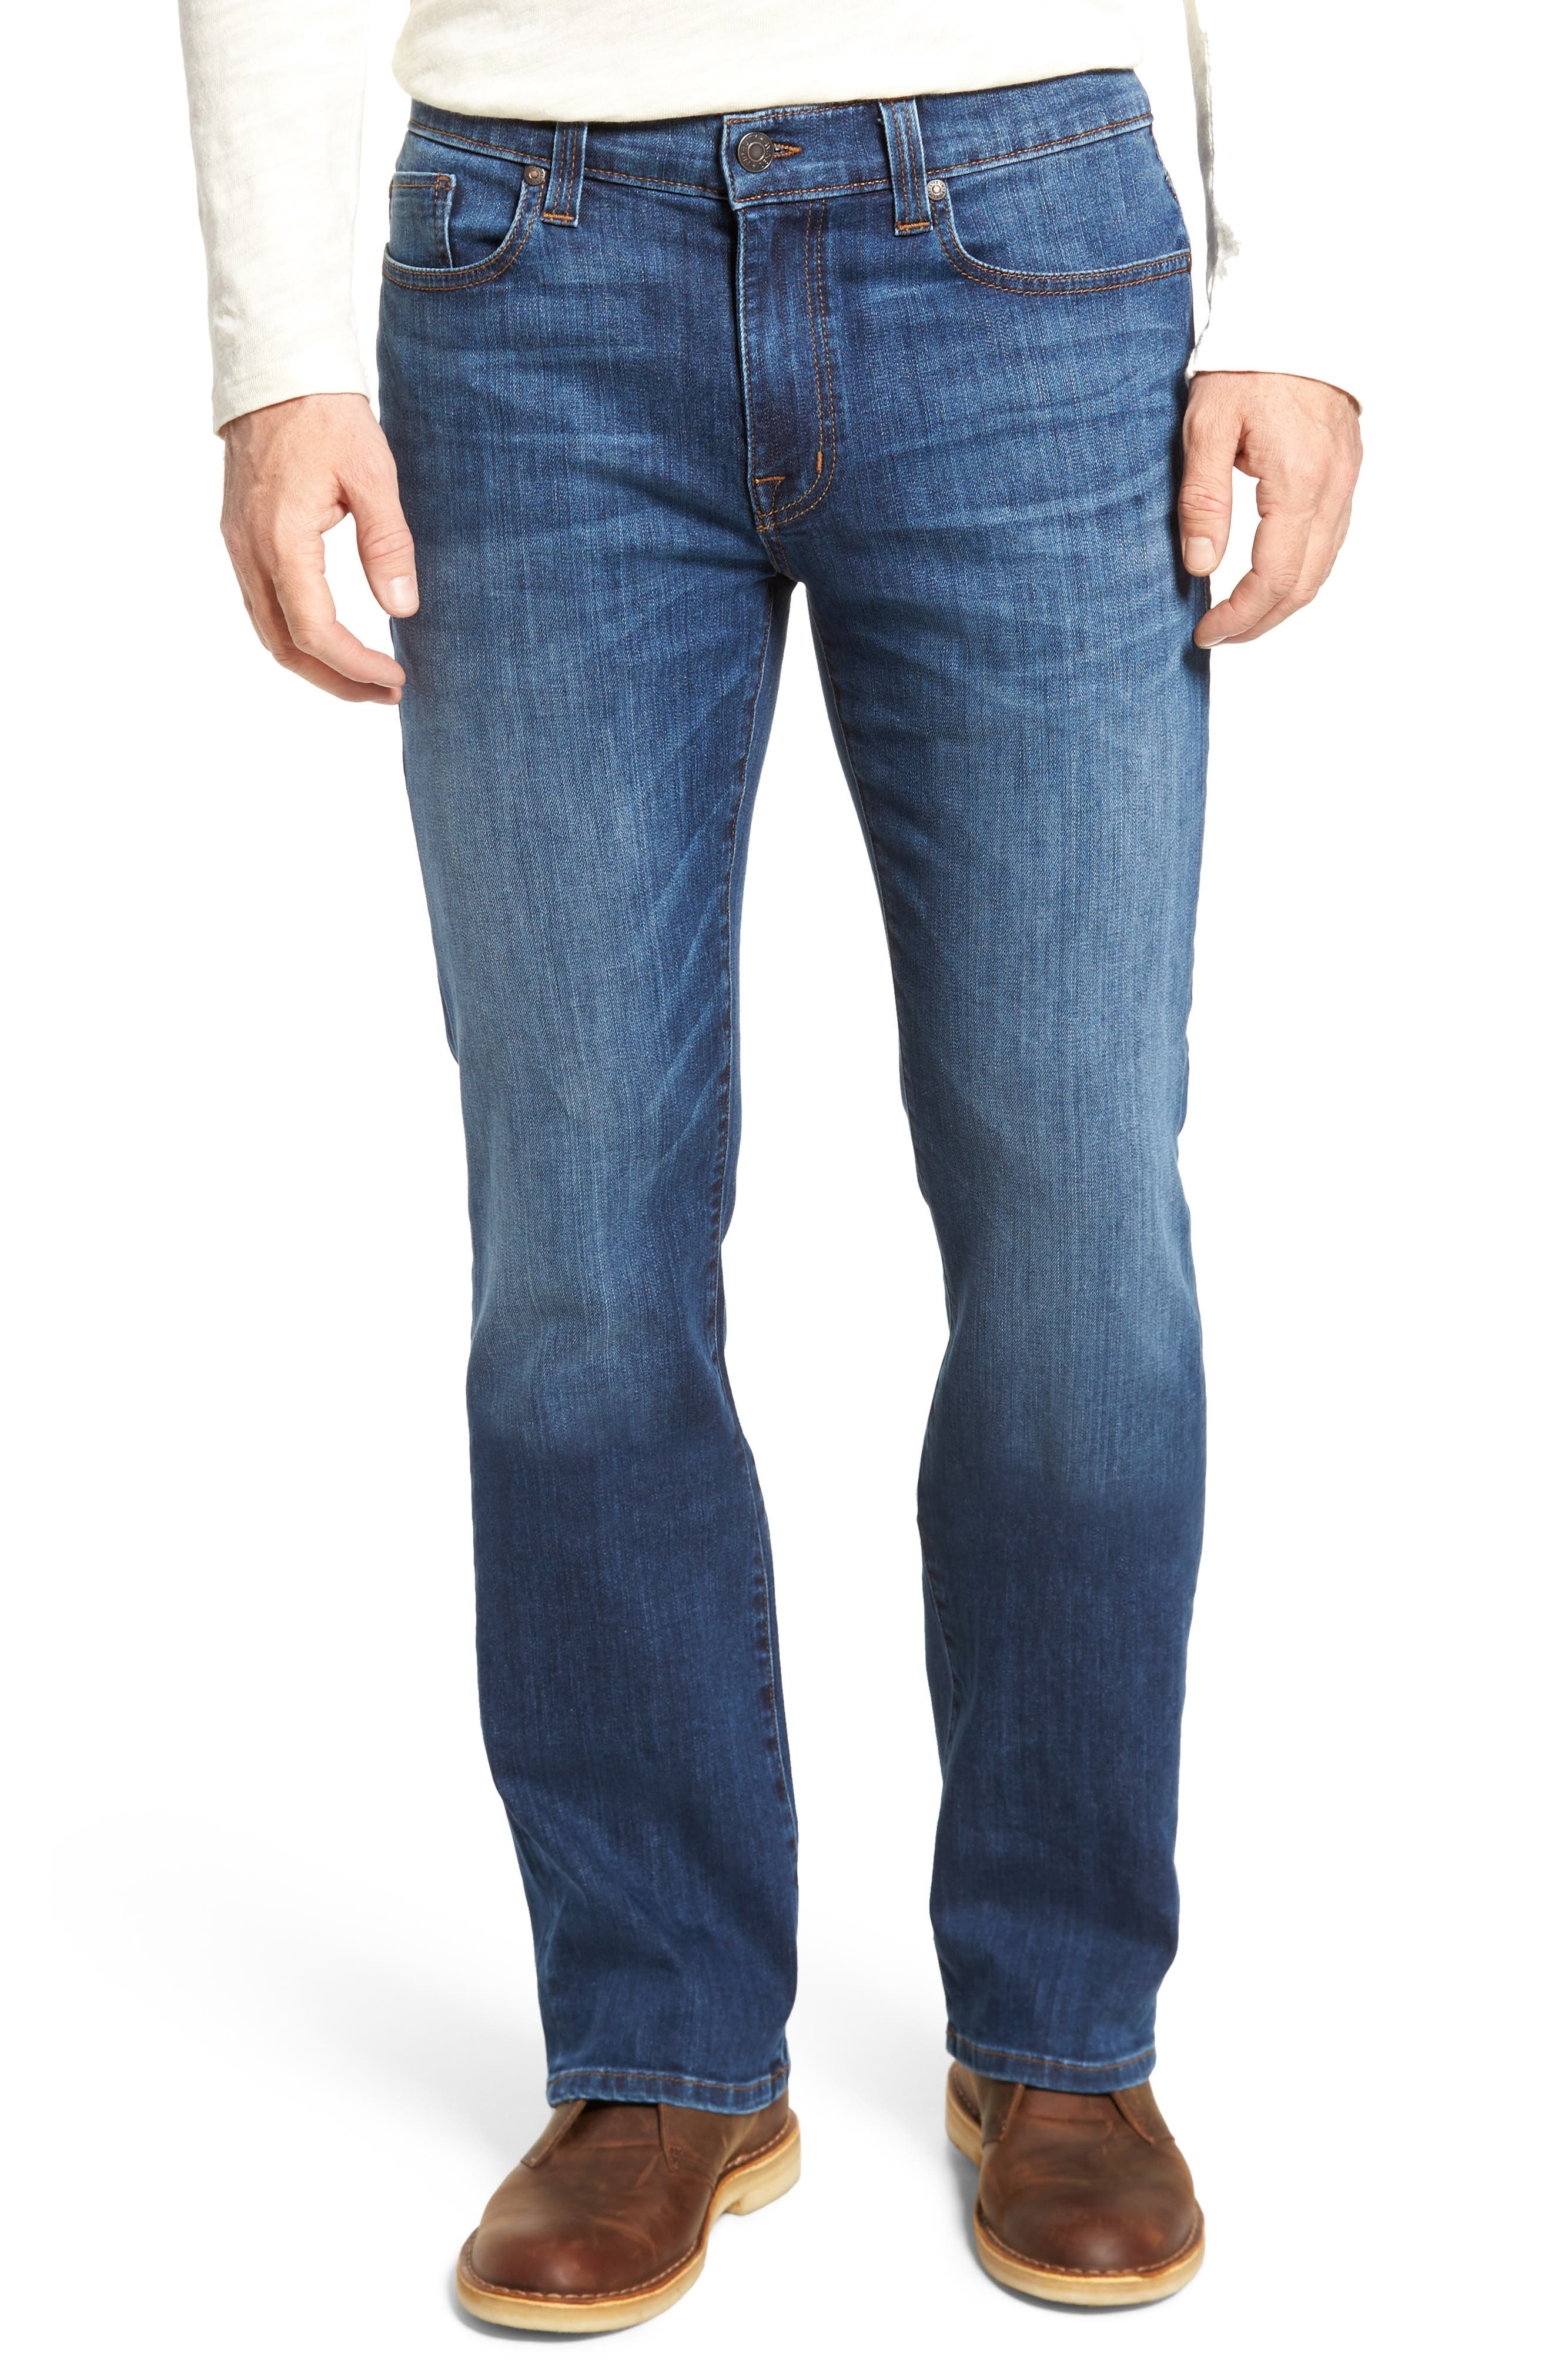 Alternate Image 1 Selected - Fidelity Denim 5011 Relaxed Fit Jeans (Liverpool)